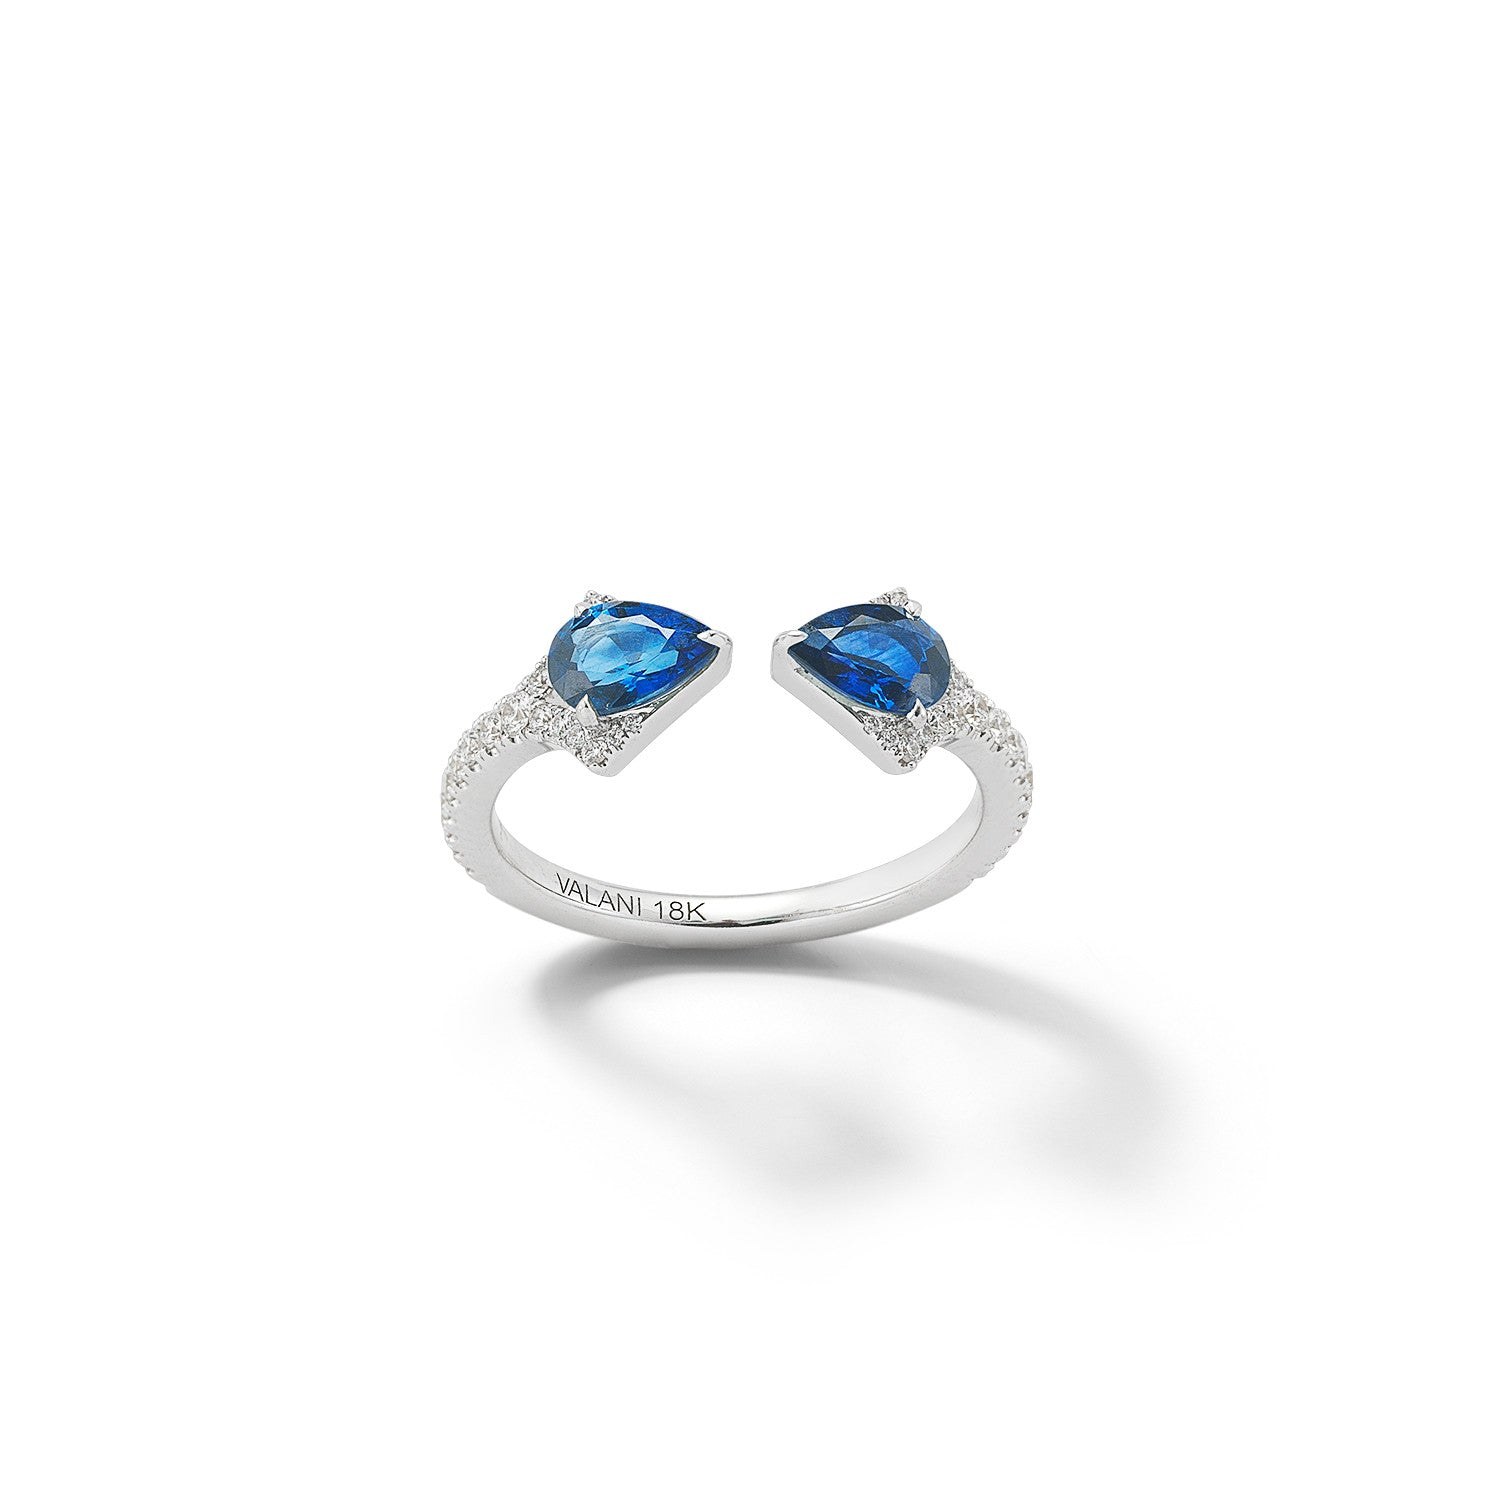 contemporary david rings rub engagement with finest ring product saffire in sapphire img halo over jewellery the bespoke london diamond ashton handmade set